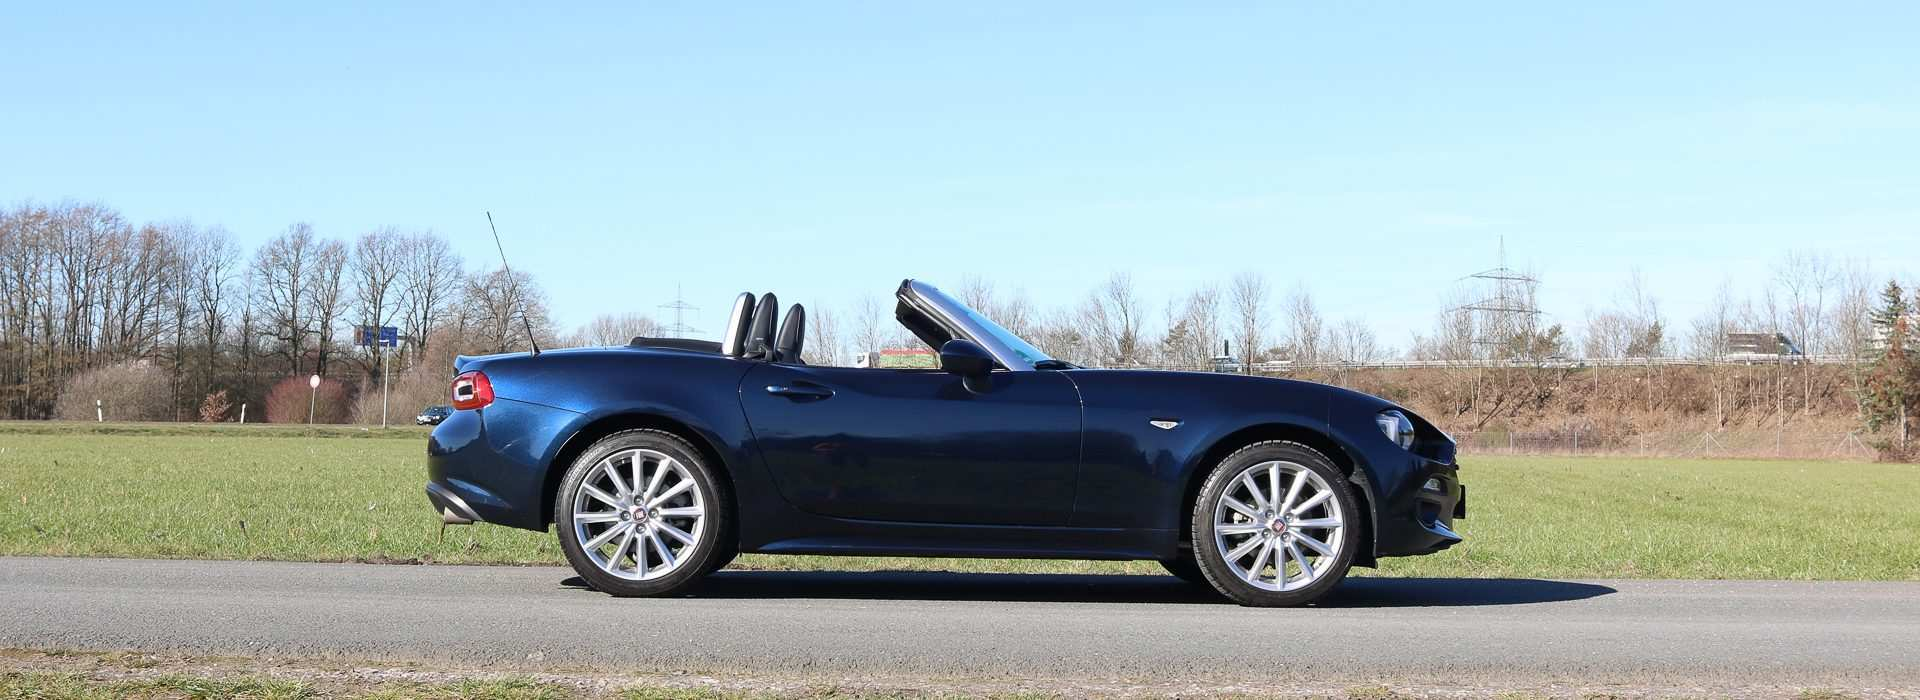 16 All New 2019 Fiat Spider Research New